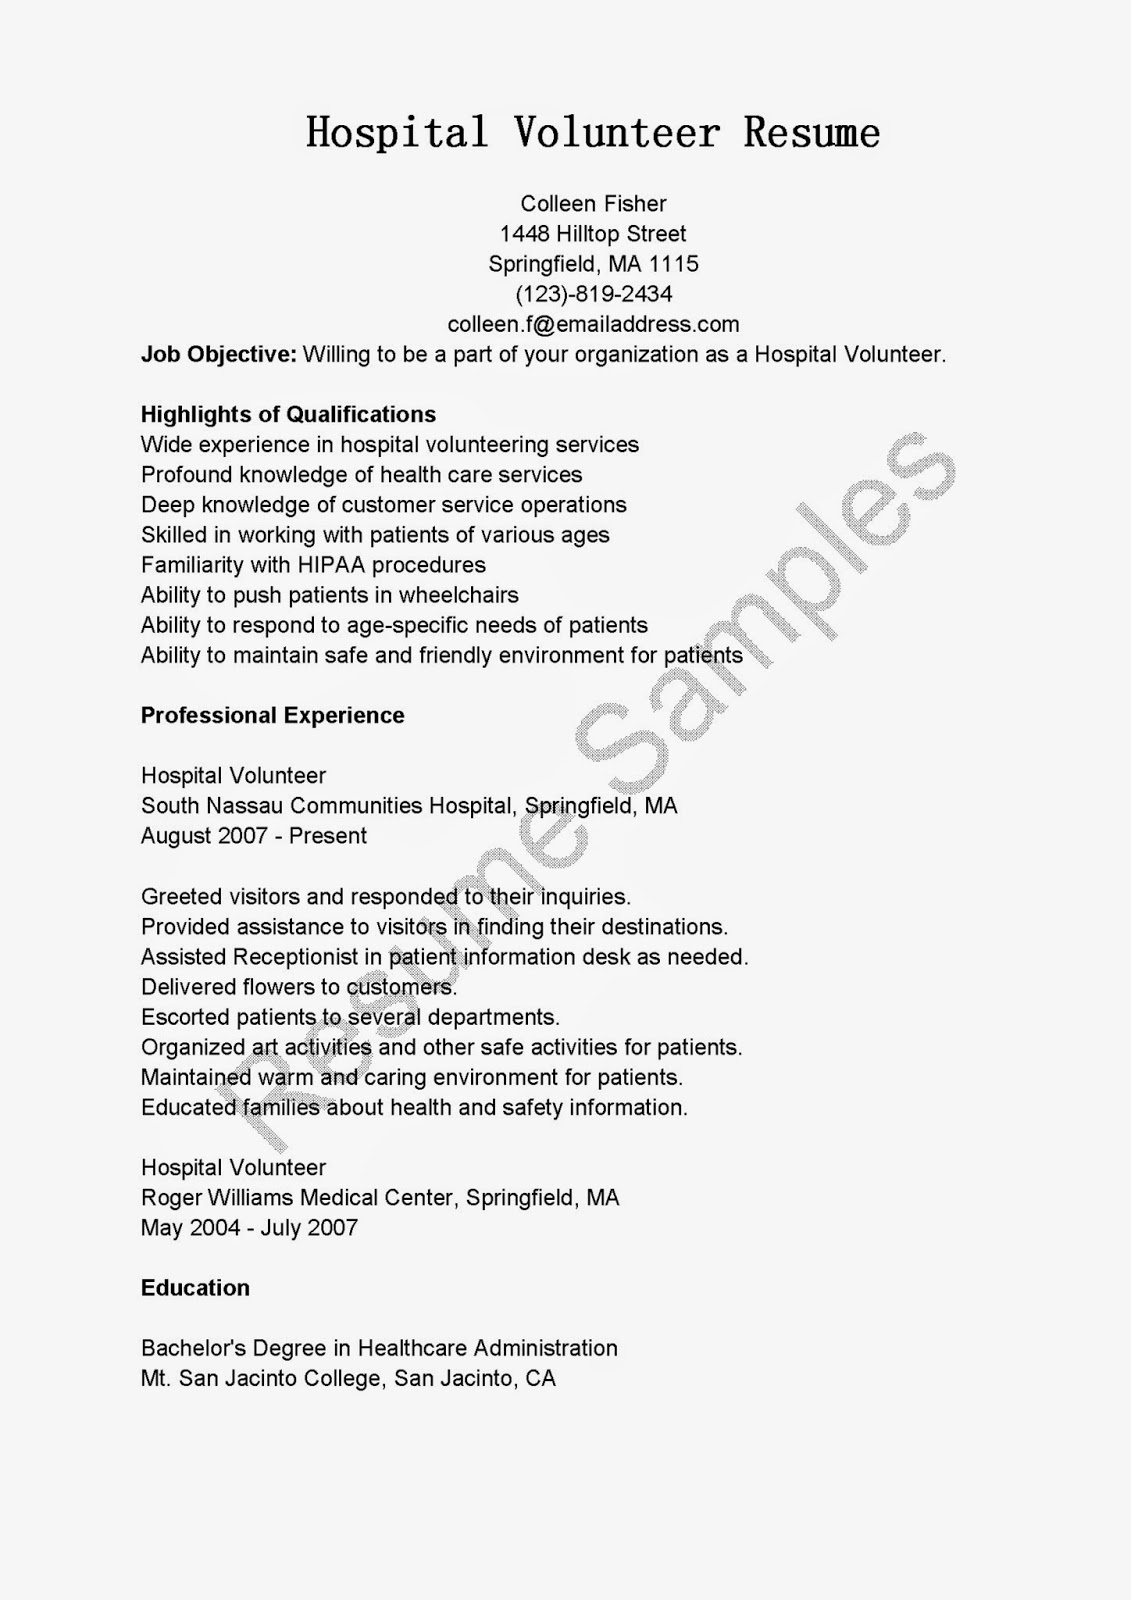 Resume Samples Hospital Volunteer Resume Sample